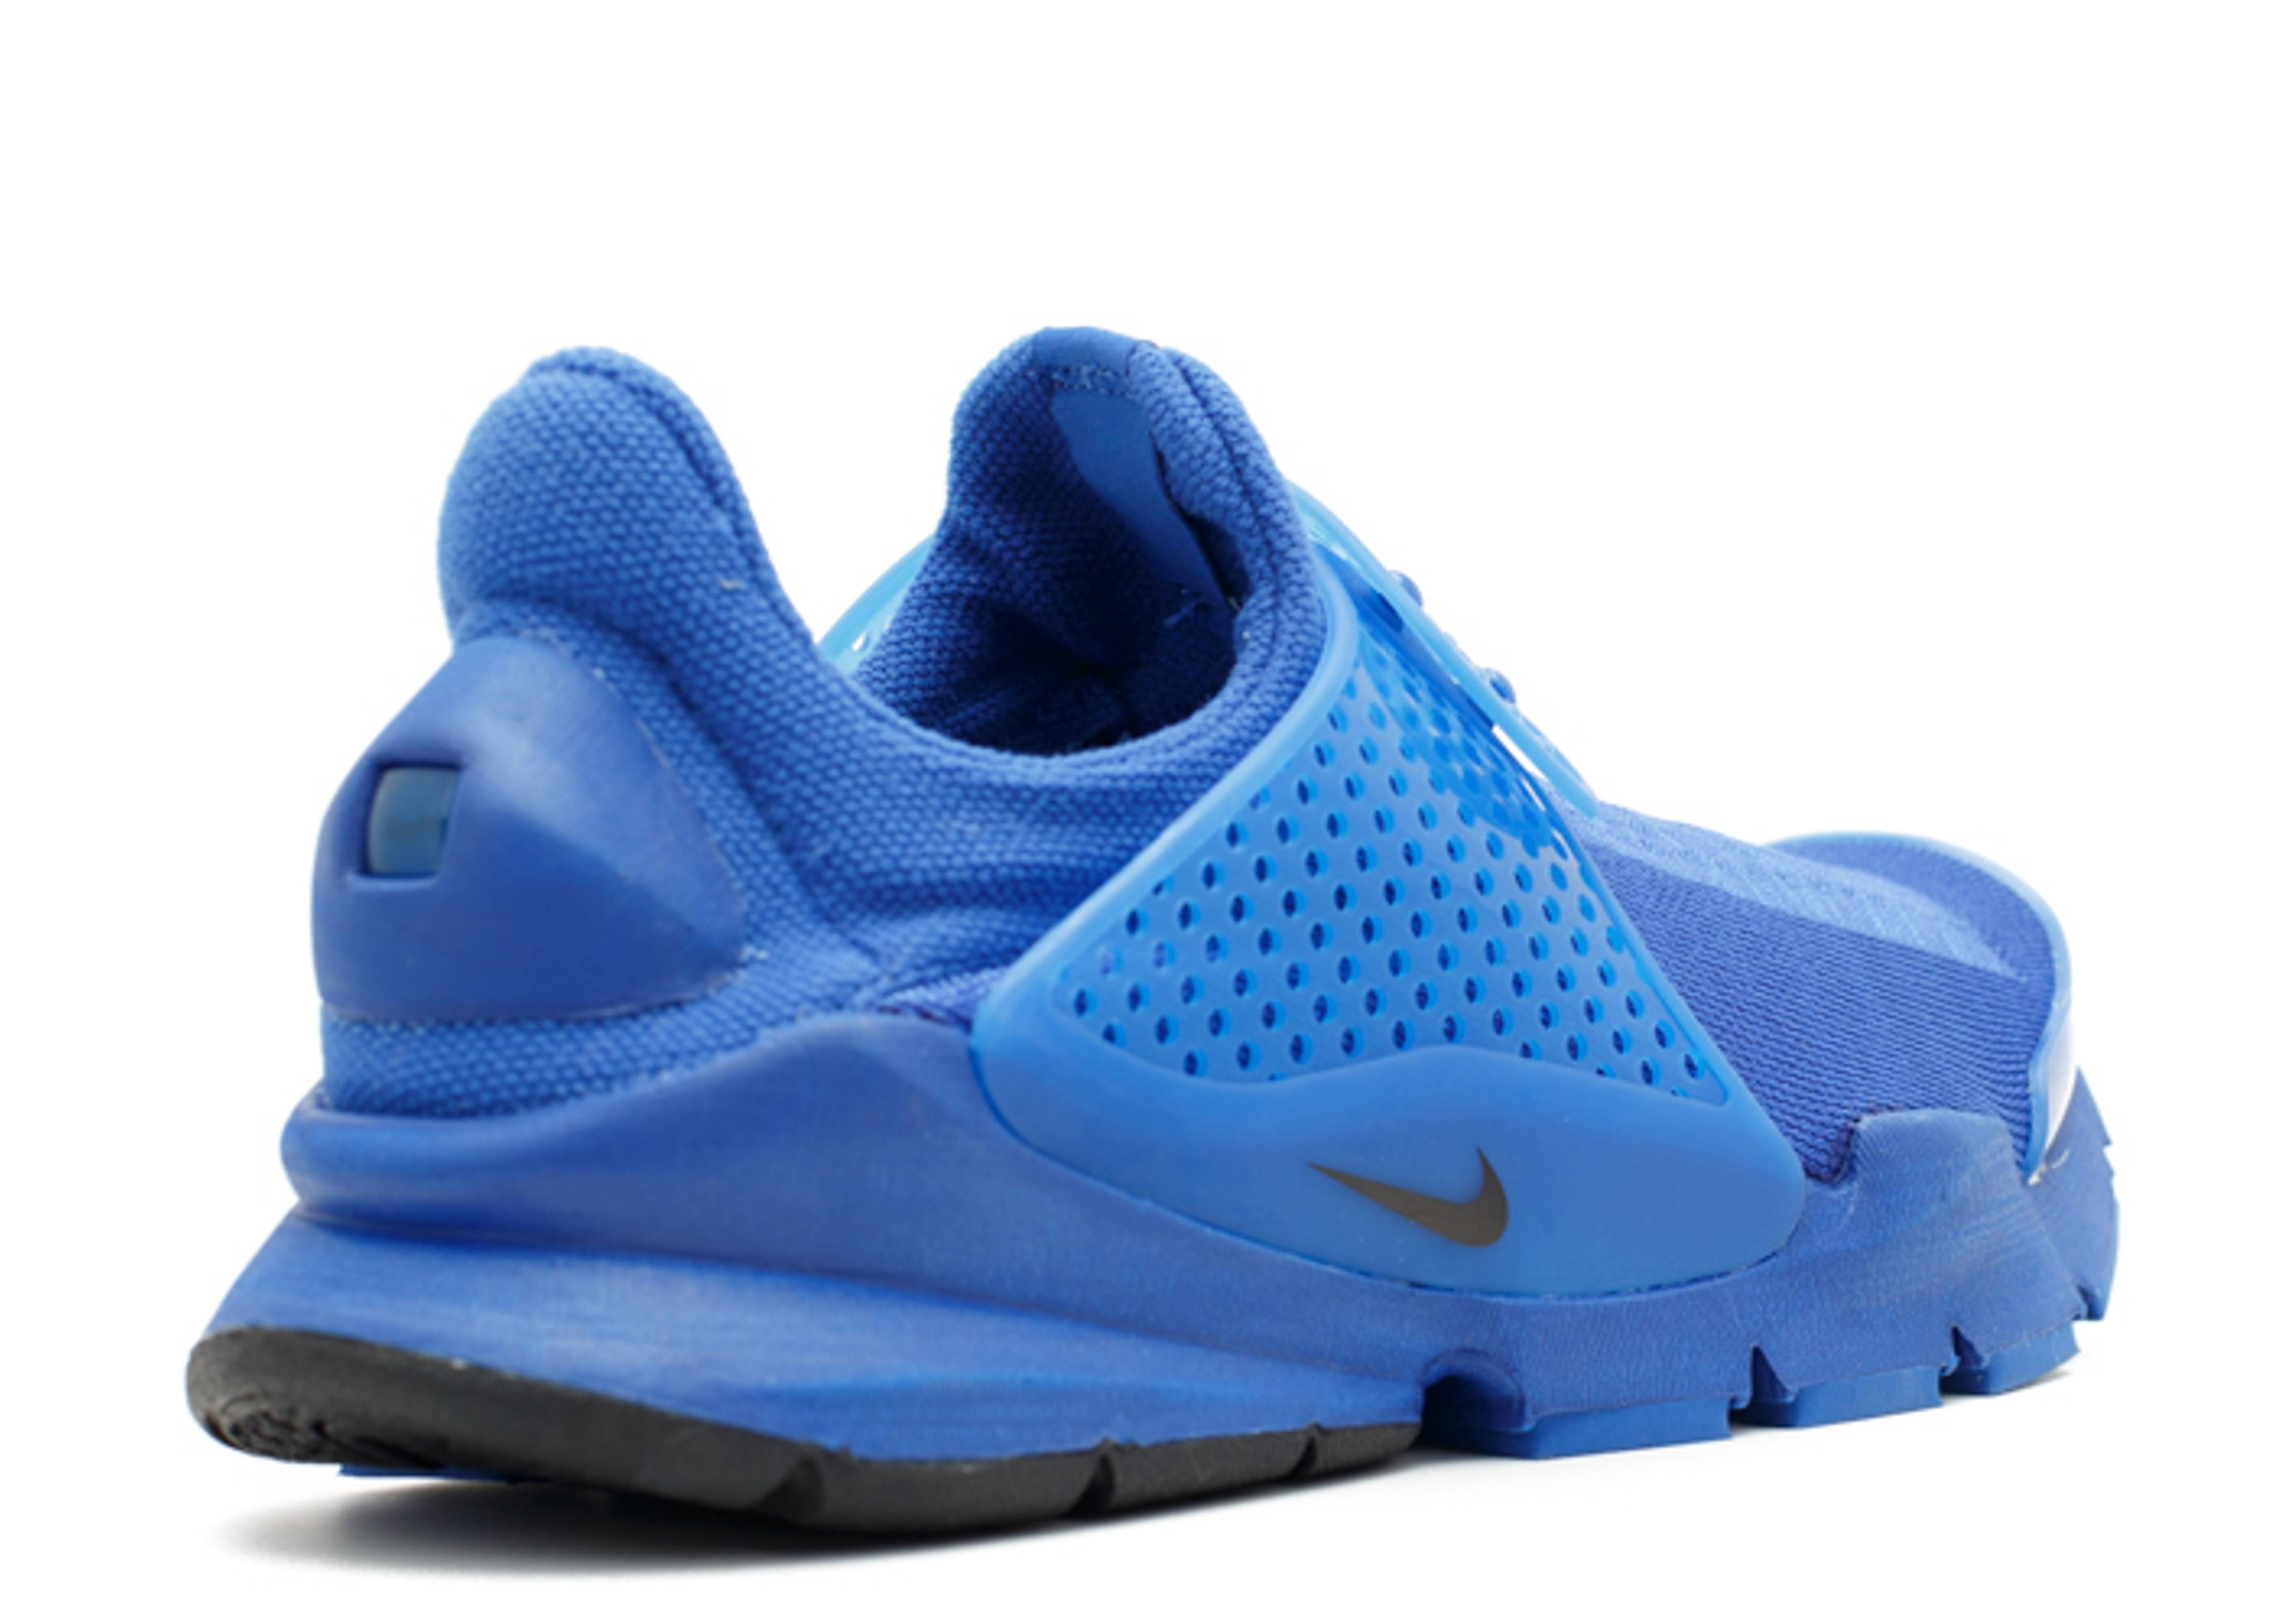 Nike Sock Dart Independence Day Blue Trainer Size 5.5 UK